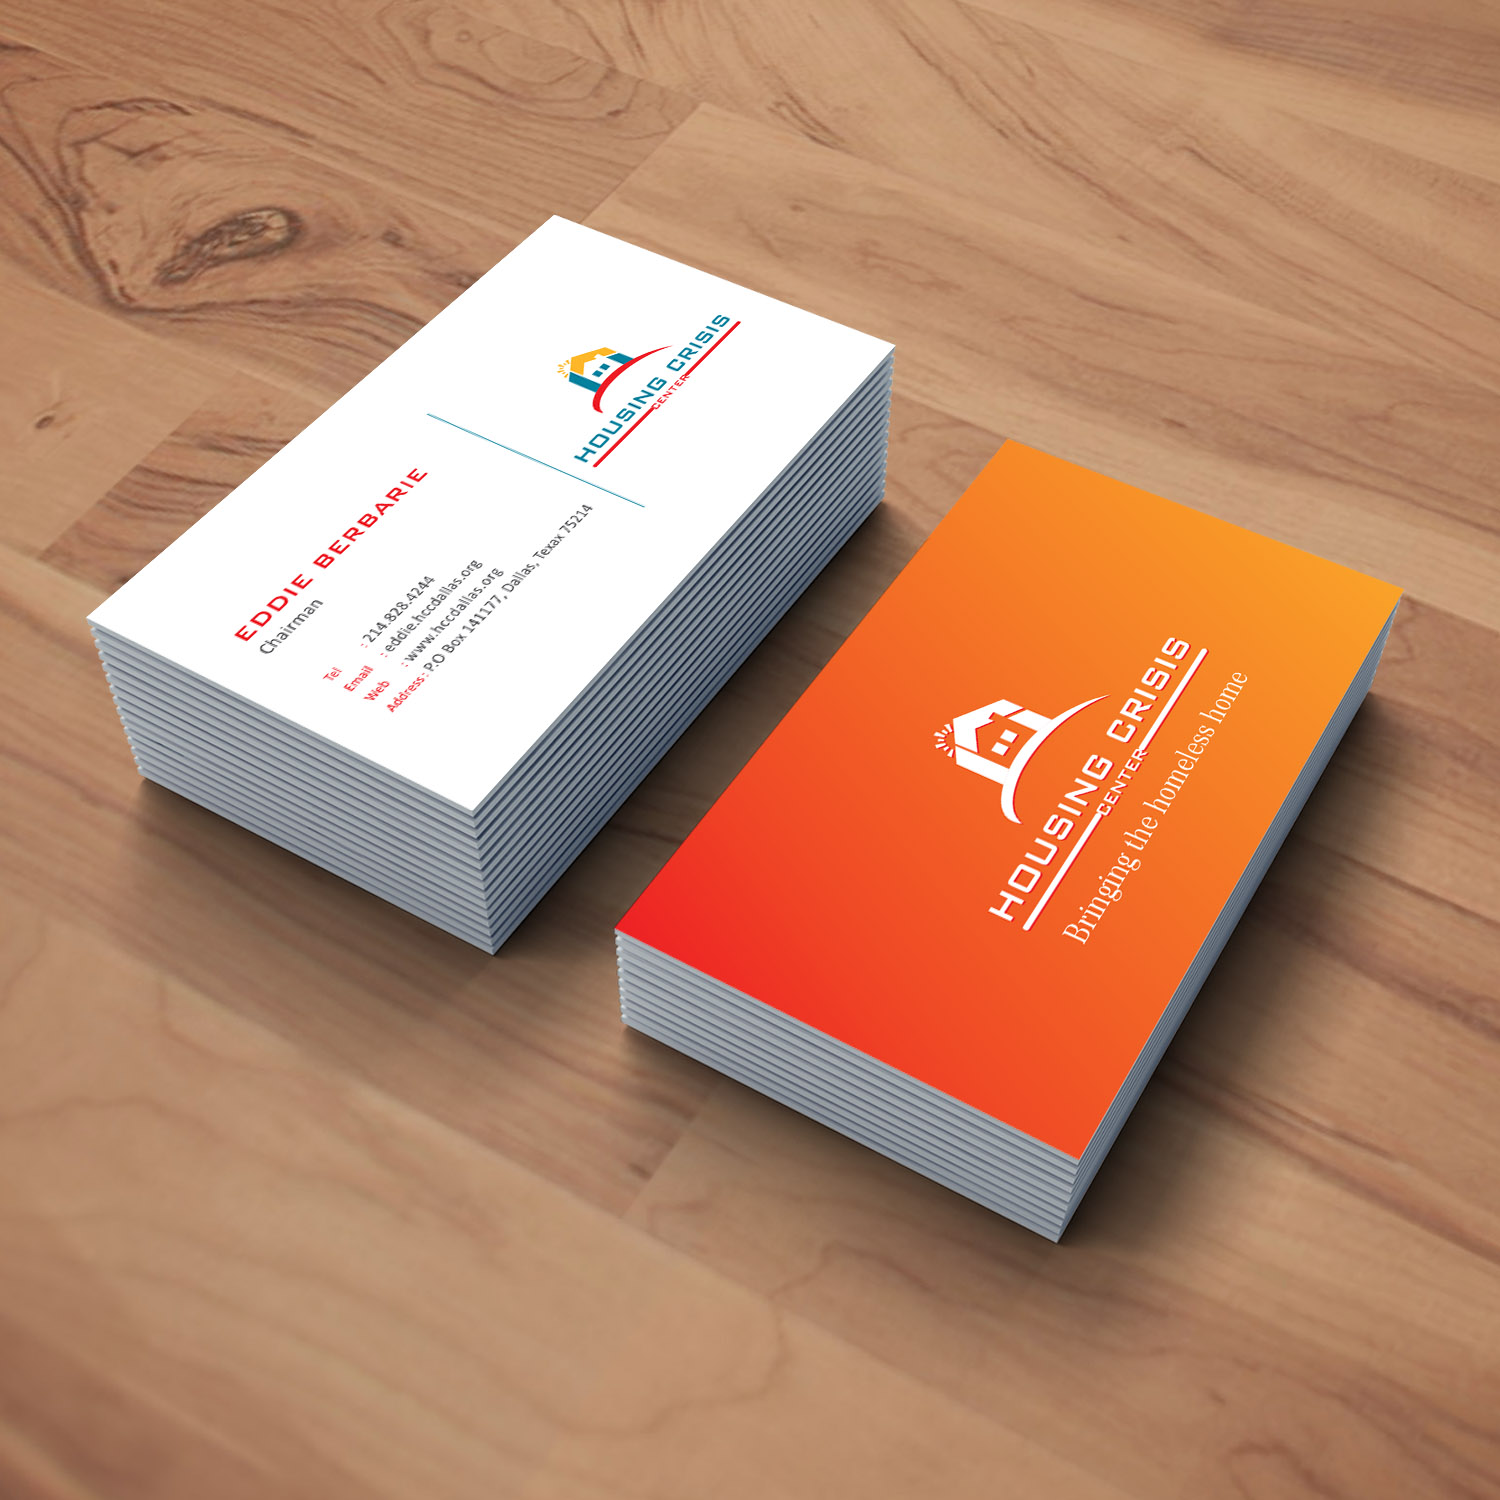 Colorful serious non profit business card design for housing business card design by creative jiniya for housing crisis center design 17960645 colourmoves